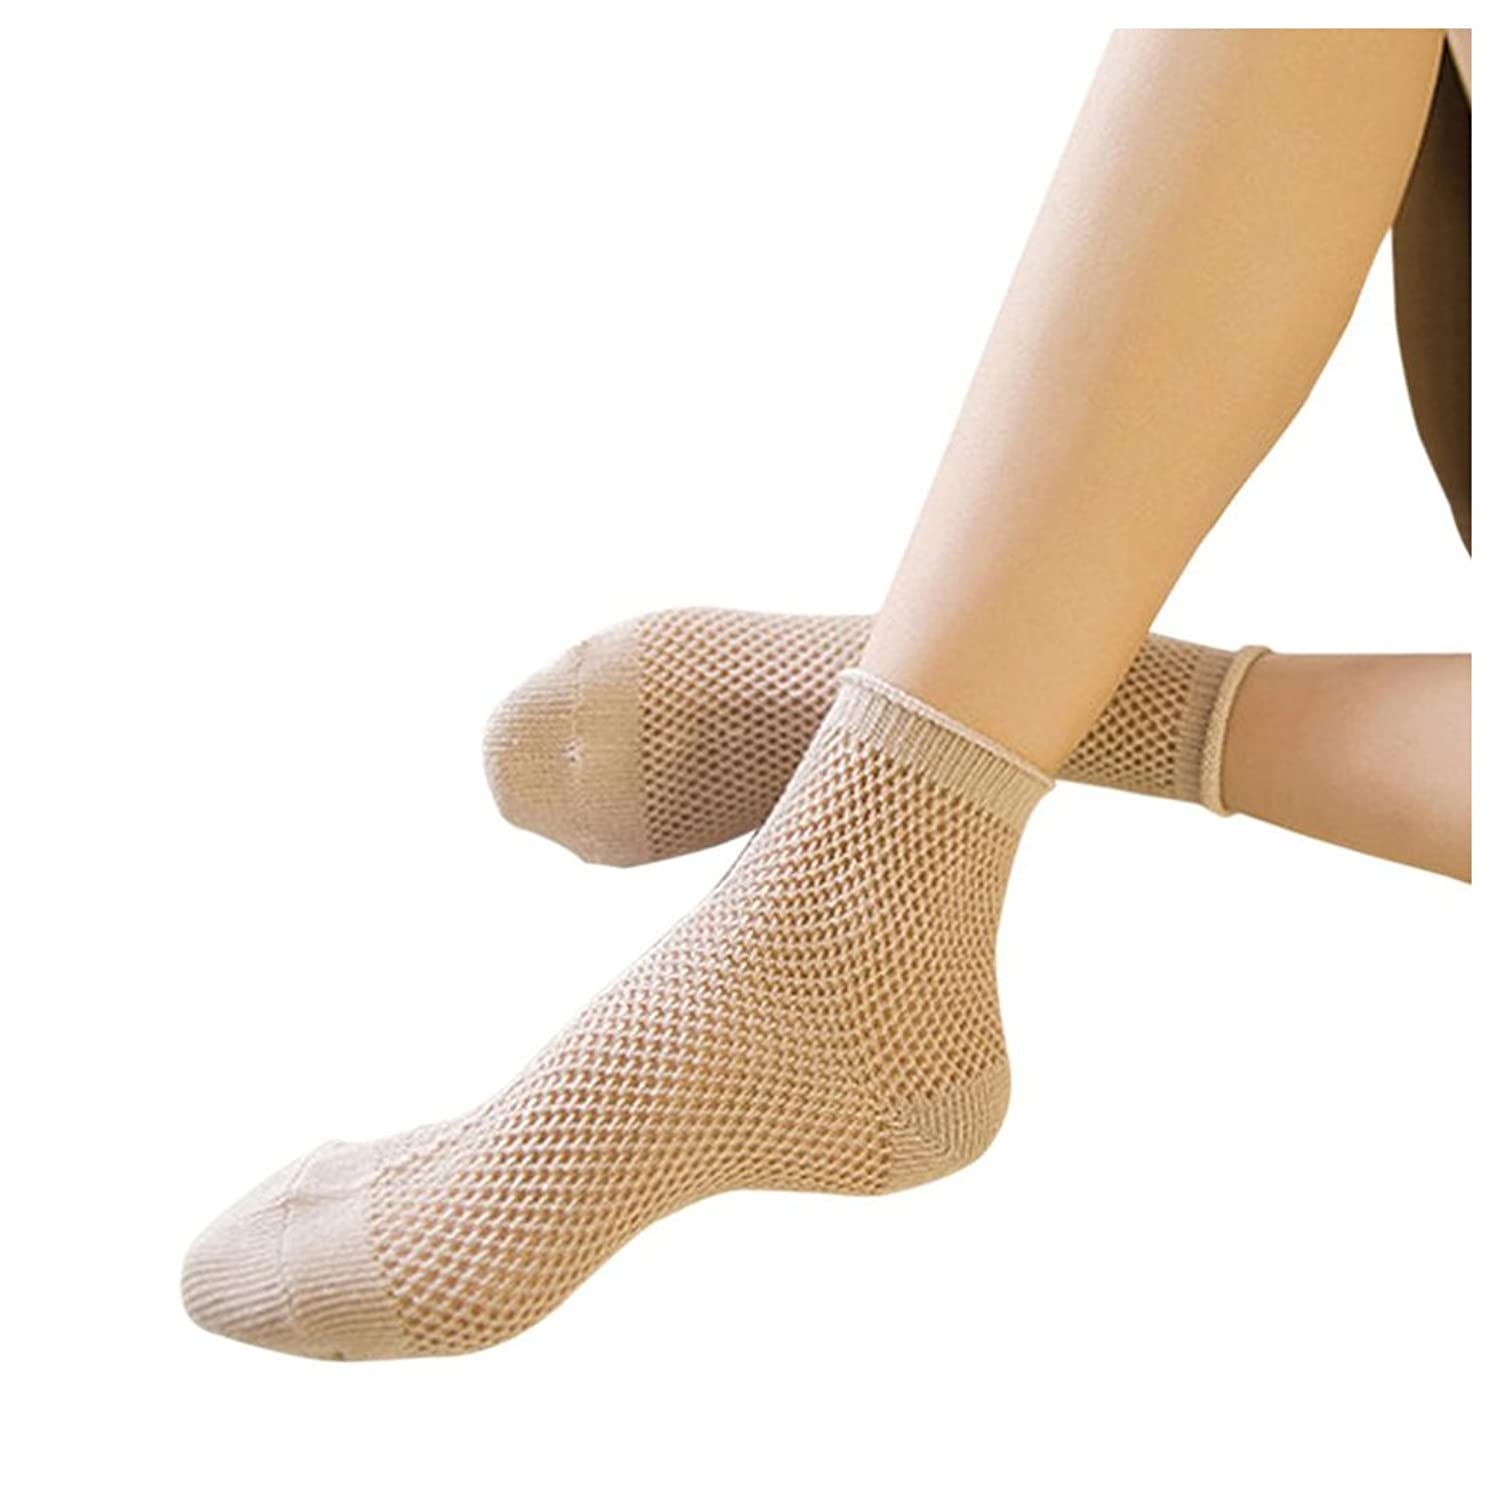 Women Fishnet Socks Inkach Girls Lace Hollow Ruffle Fishnet Ankle High Socks Mesh Lace Fish Net Short Socks